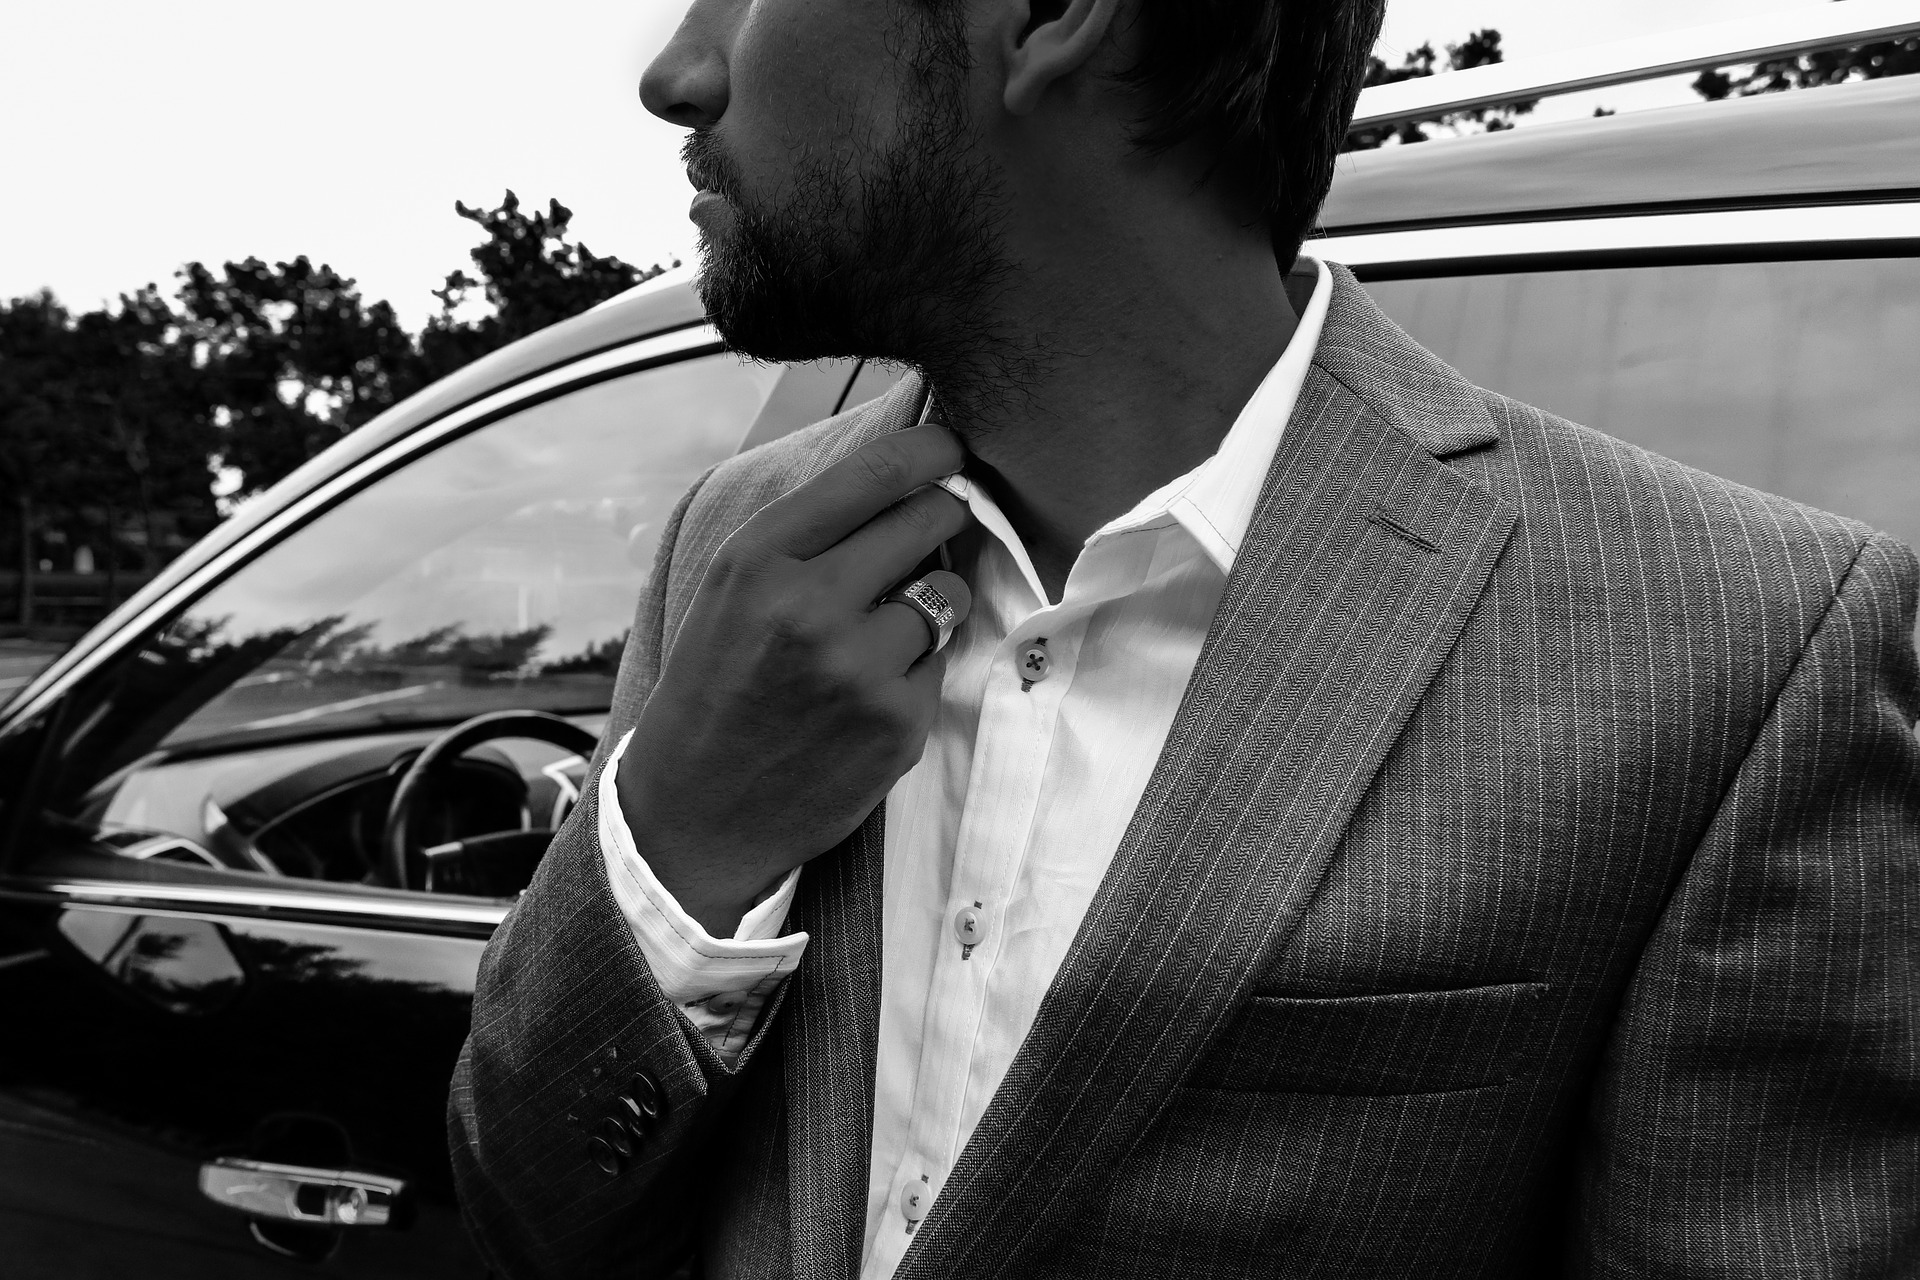 black and white photo of a man in a suit looking smart and on style